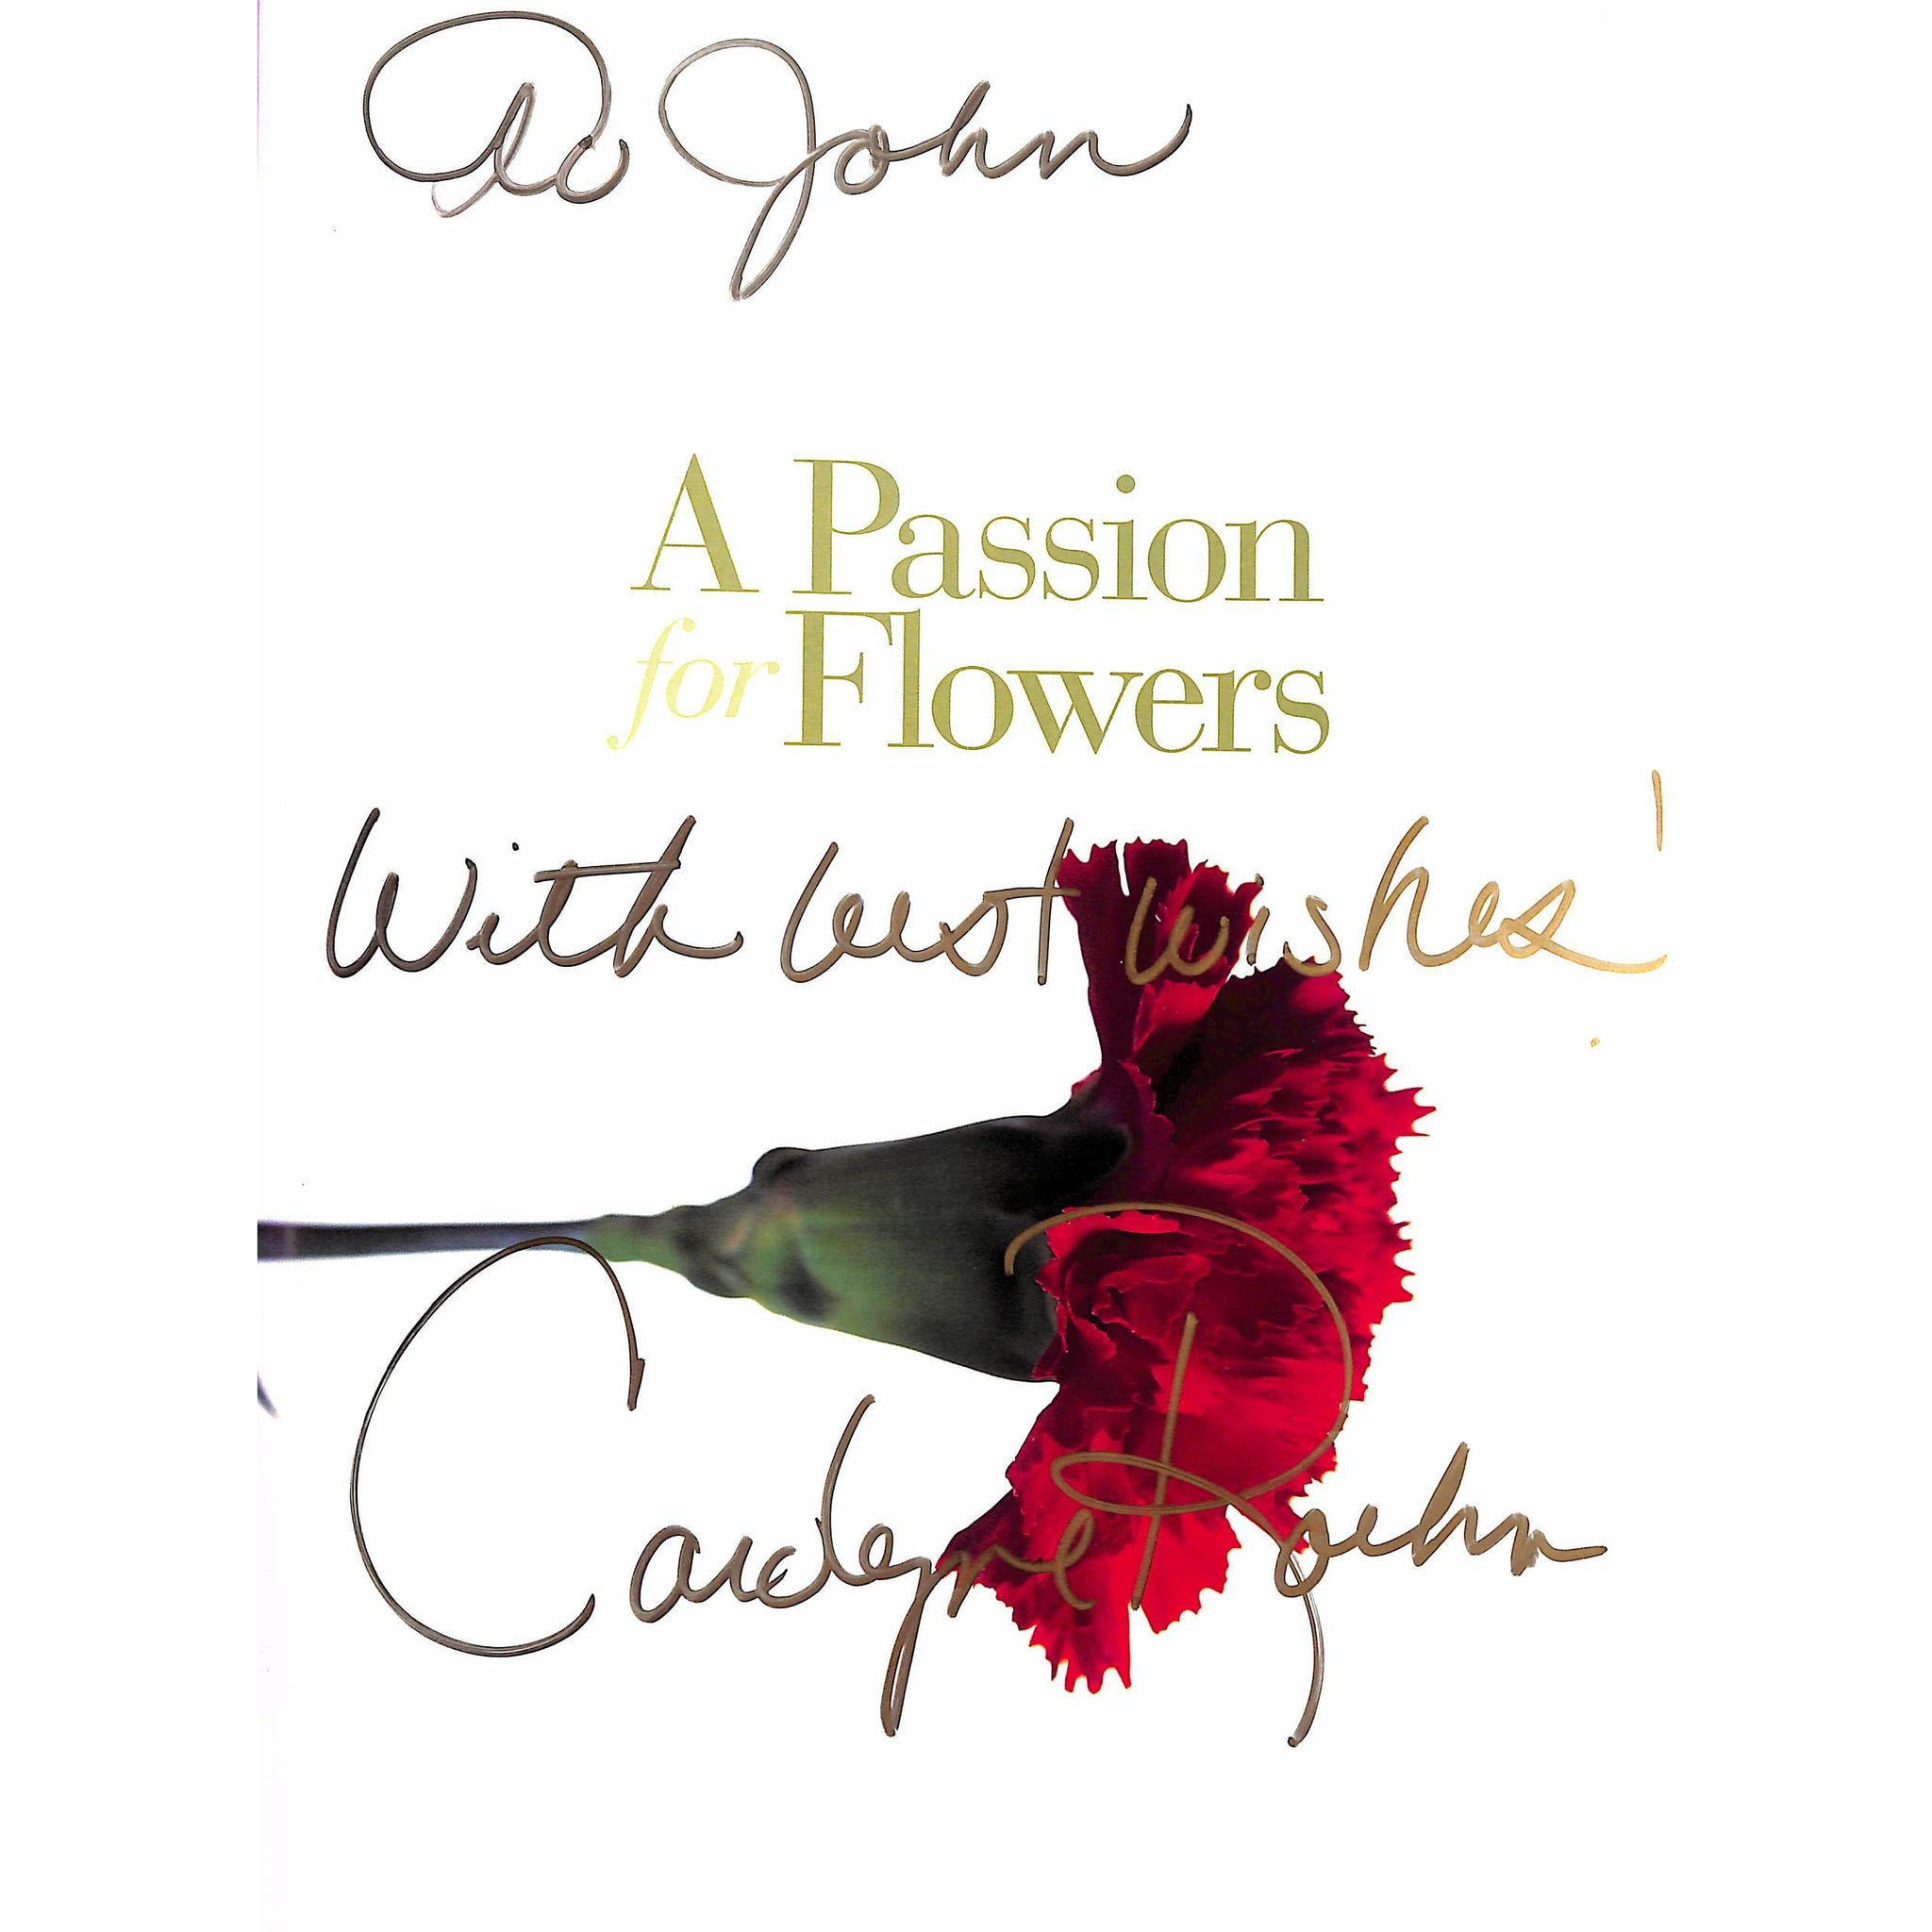 "A Passion For ""a passion for flowers"" by carolyne roehm (inscribed!)"